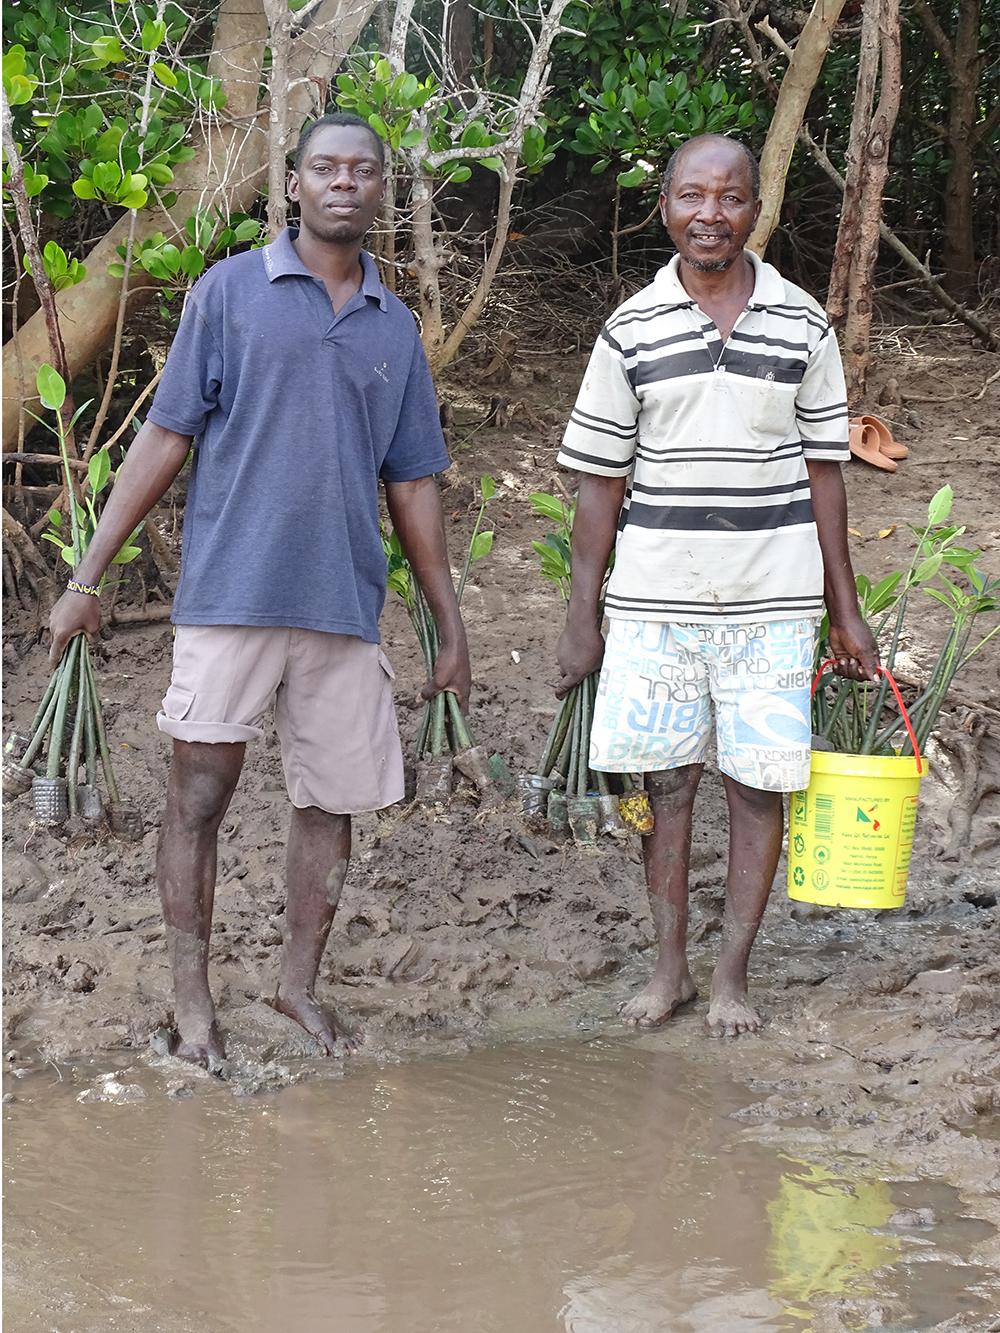 Community members carrying mangrove seedlings in Giriama (Robinson Island), Kenya. Photo credit: Seacology